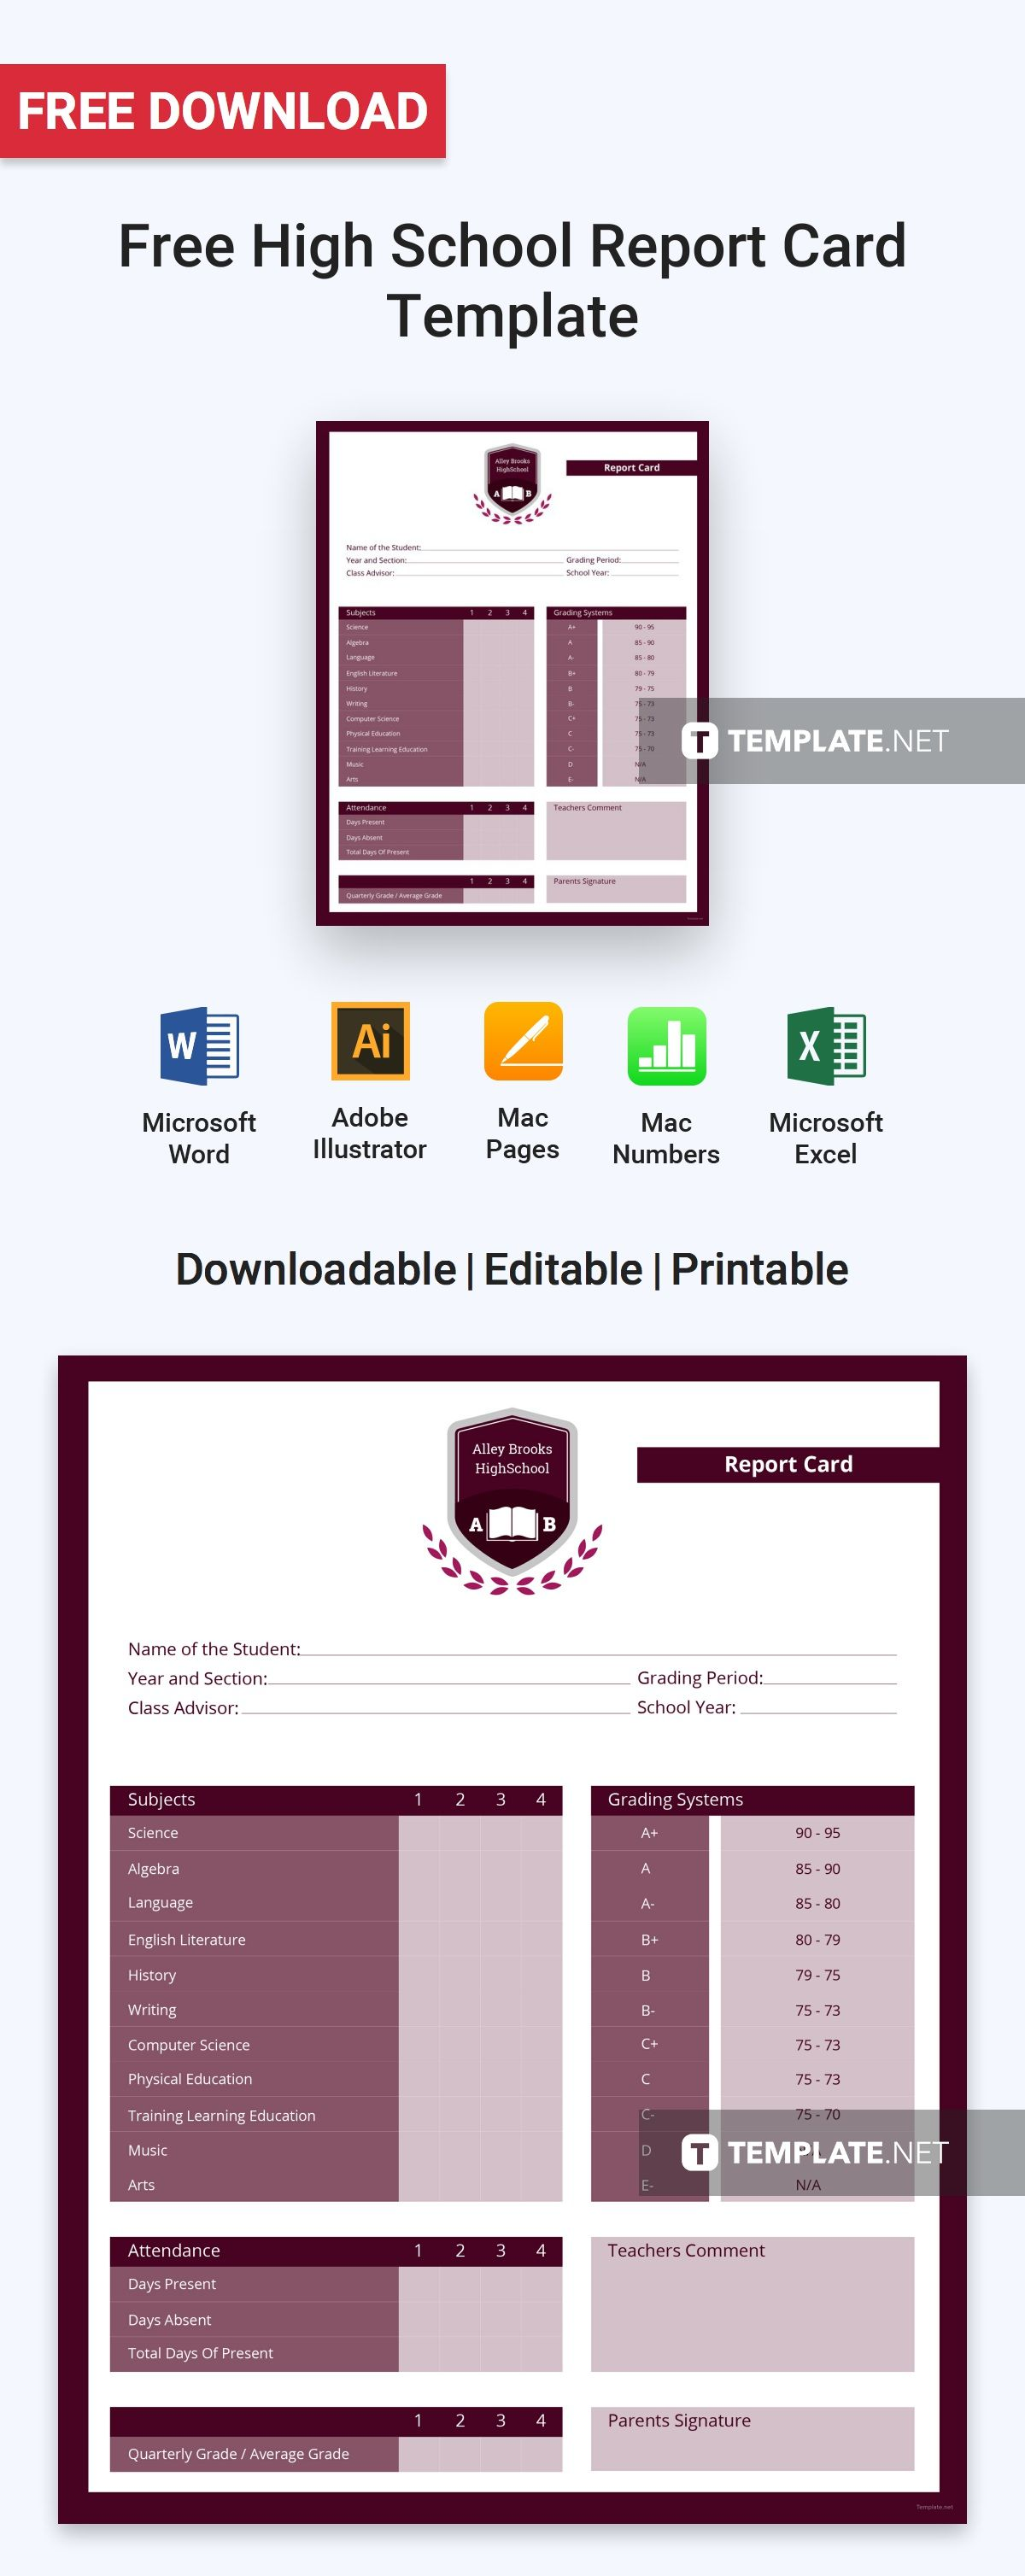 Simple High School Report Card Template Pdf Word Excel Apple Pages Illustrator Apple Numbers School Report Card Report Card Template Report Card